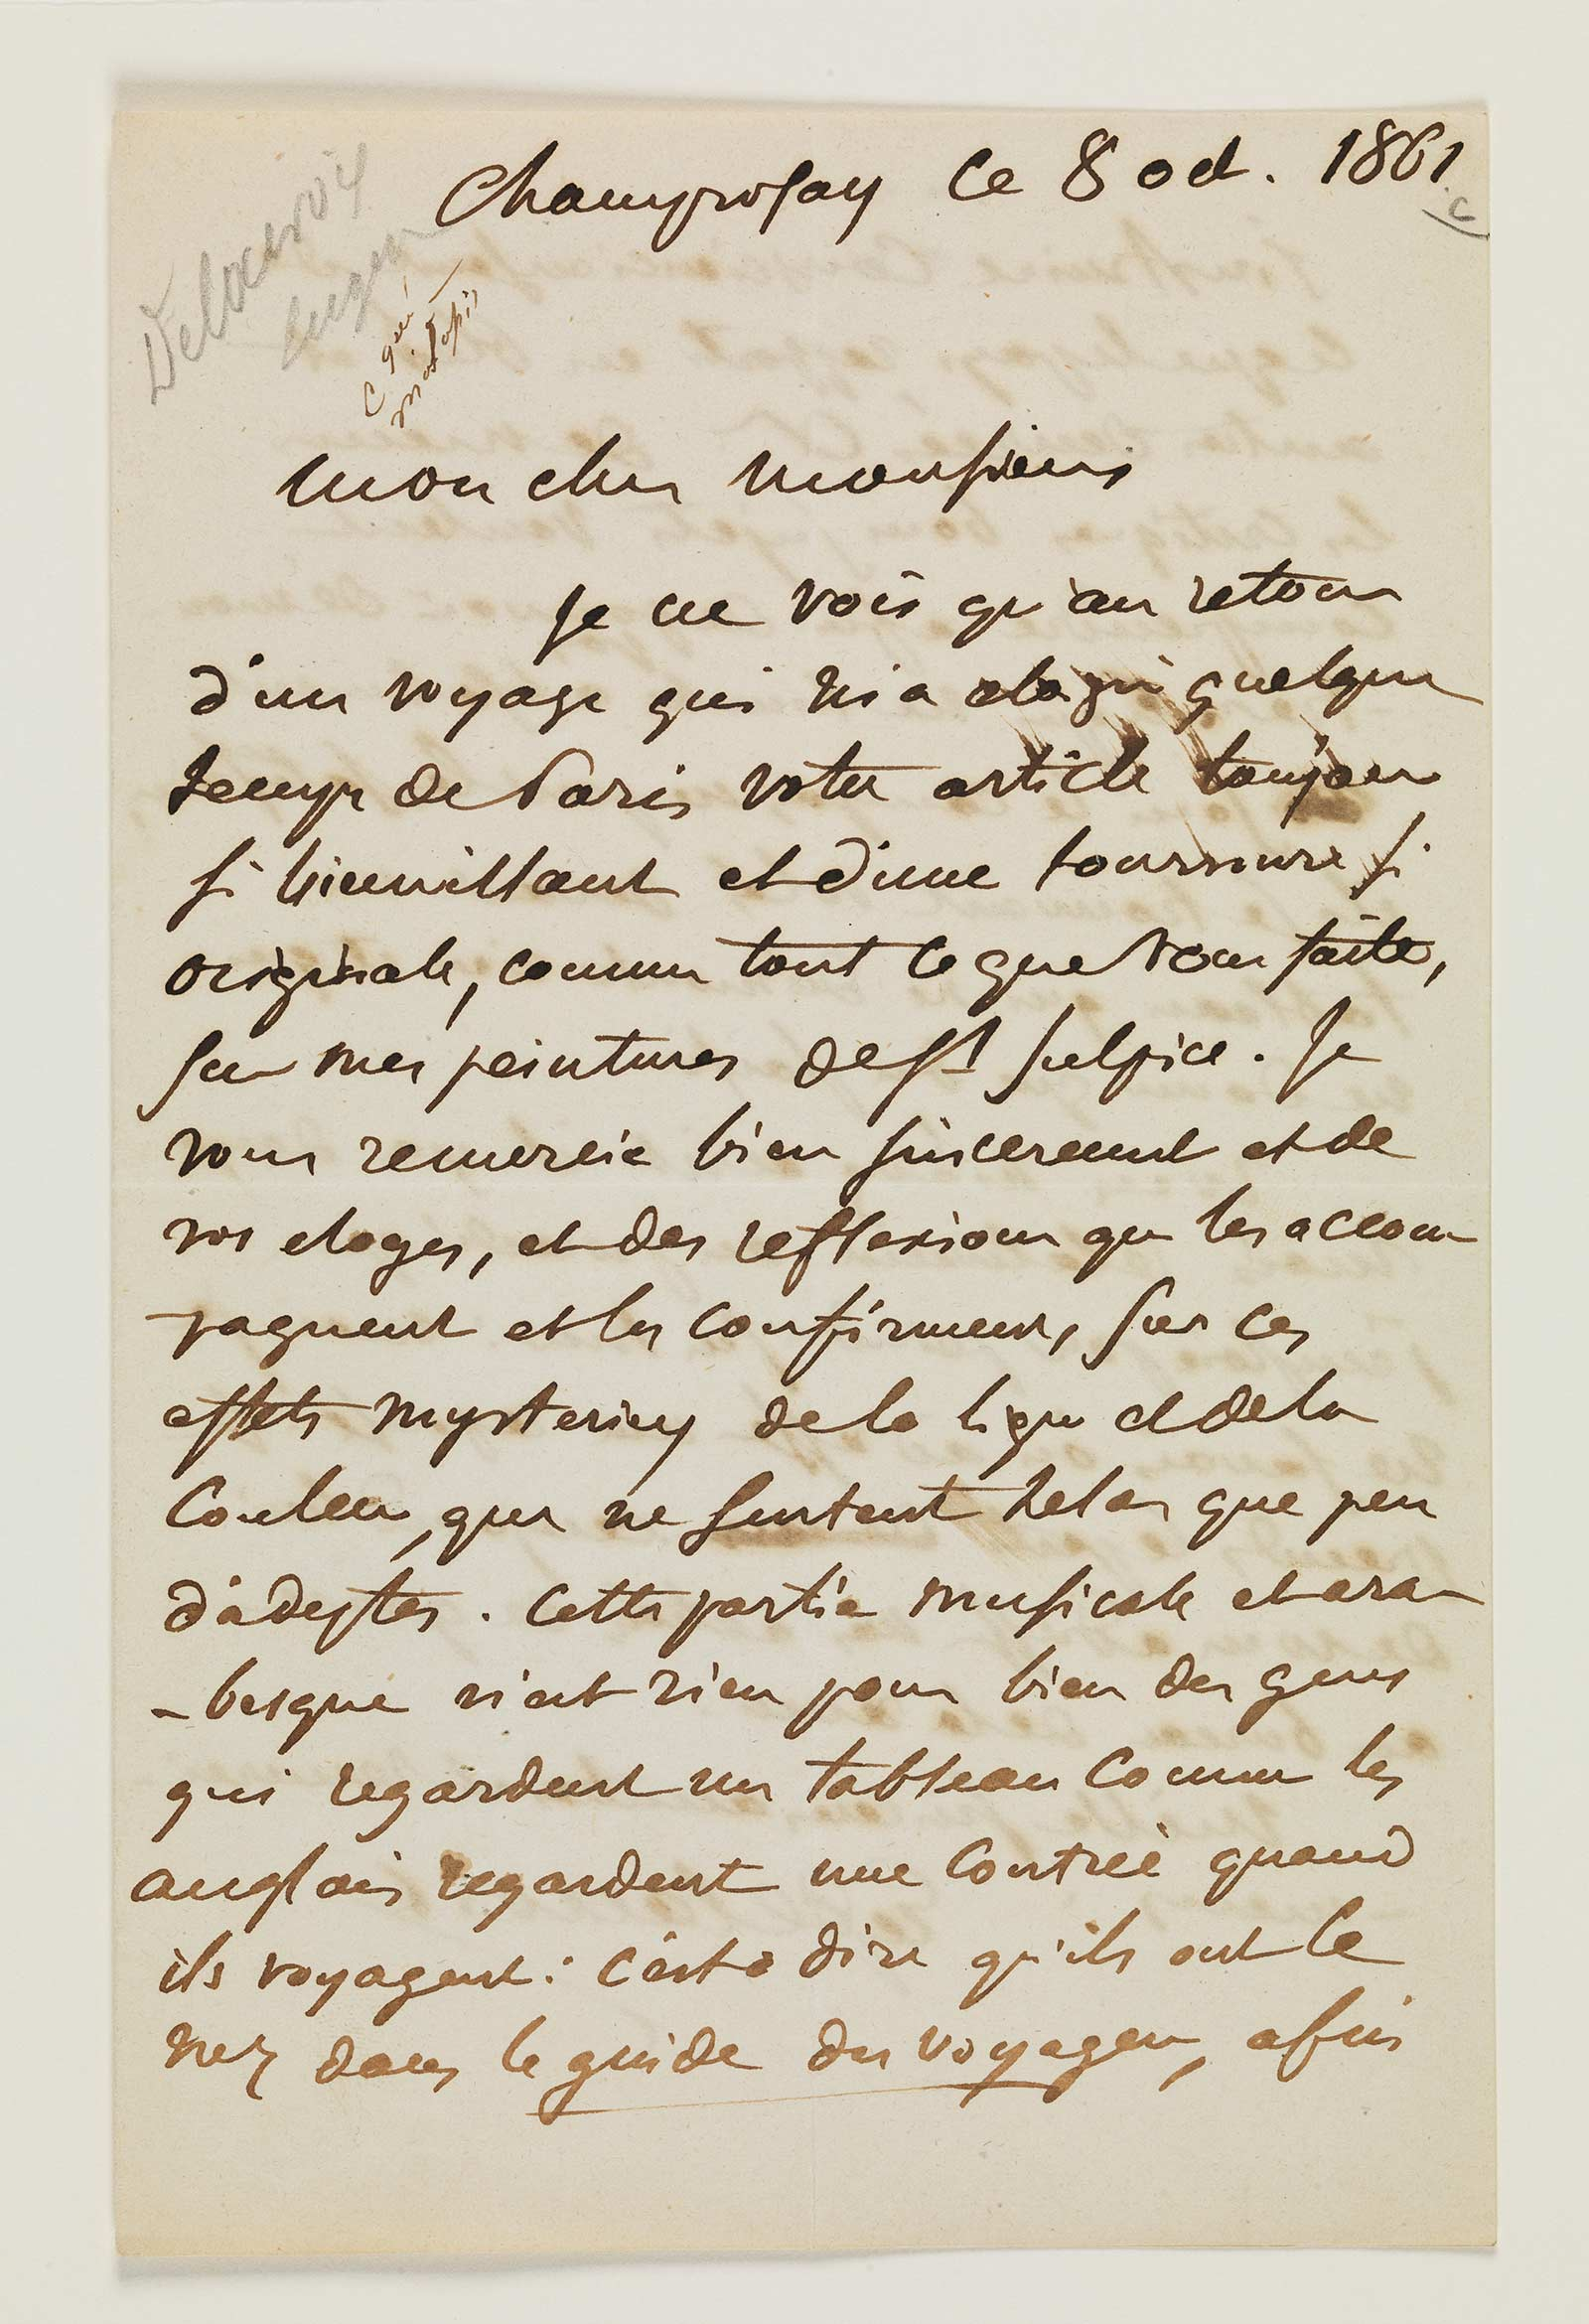 Handwritten letter from Eugène Delacroix to Charles Baudelaire, October 8 1861